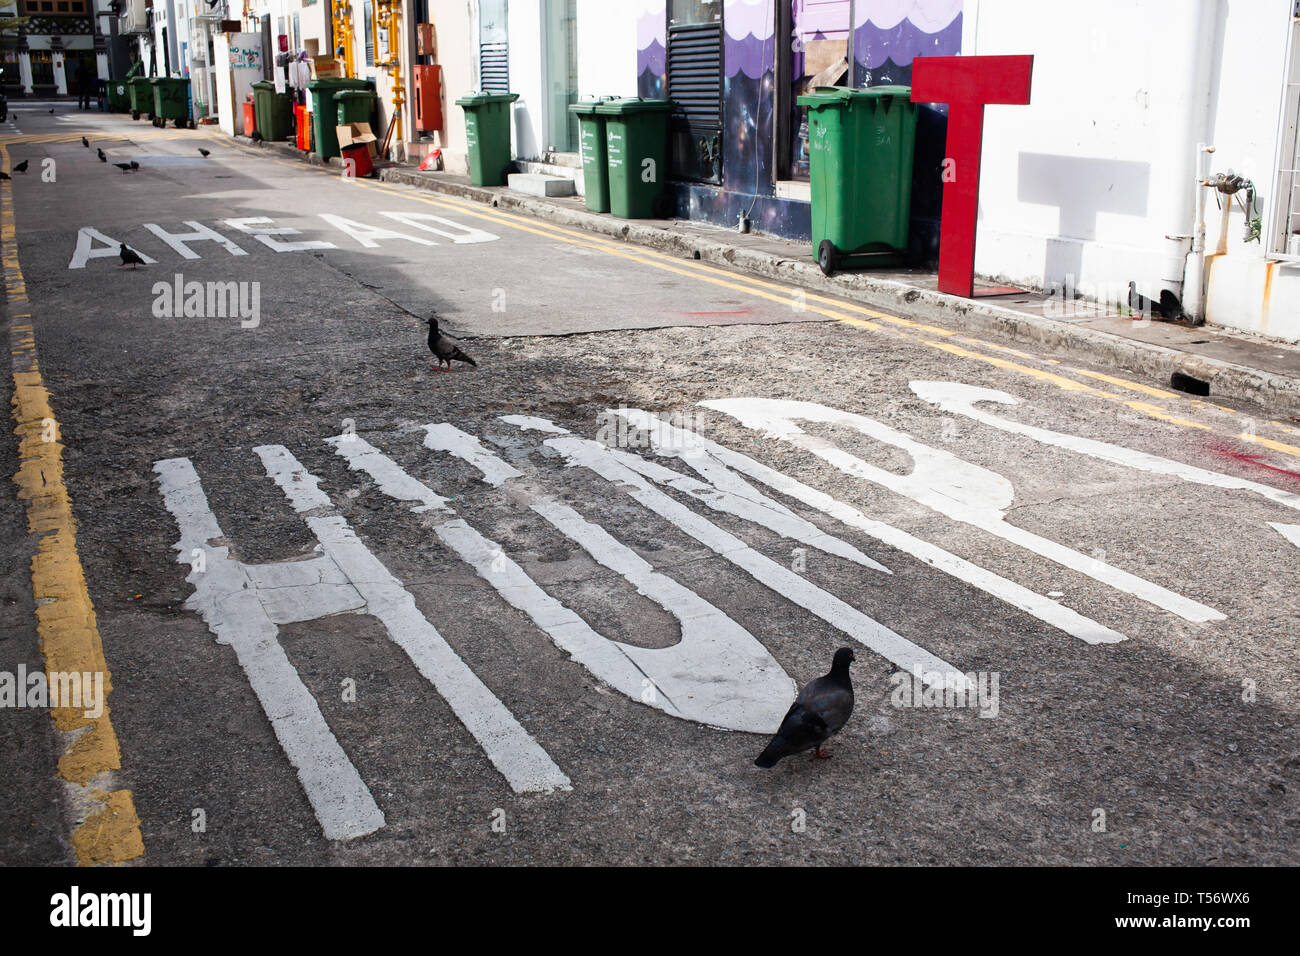 humps ahead sign on the road - Stock Image